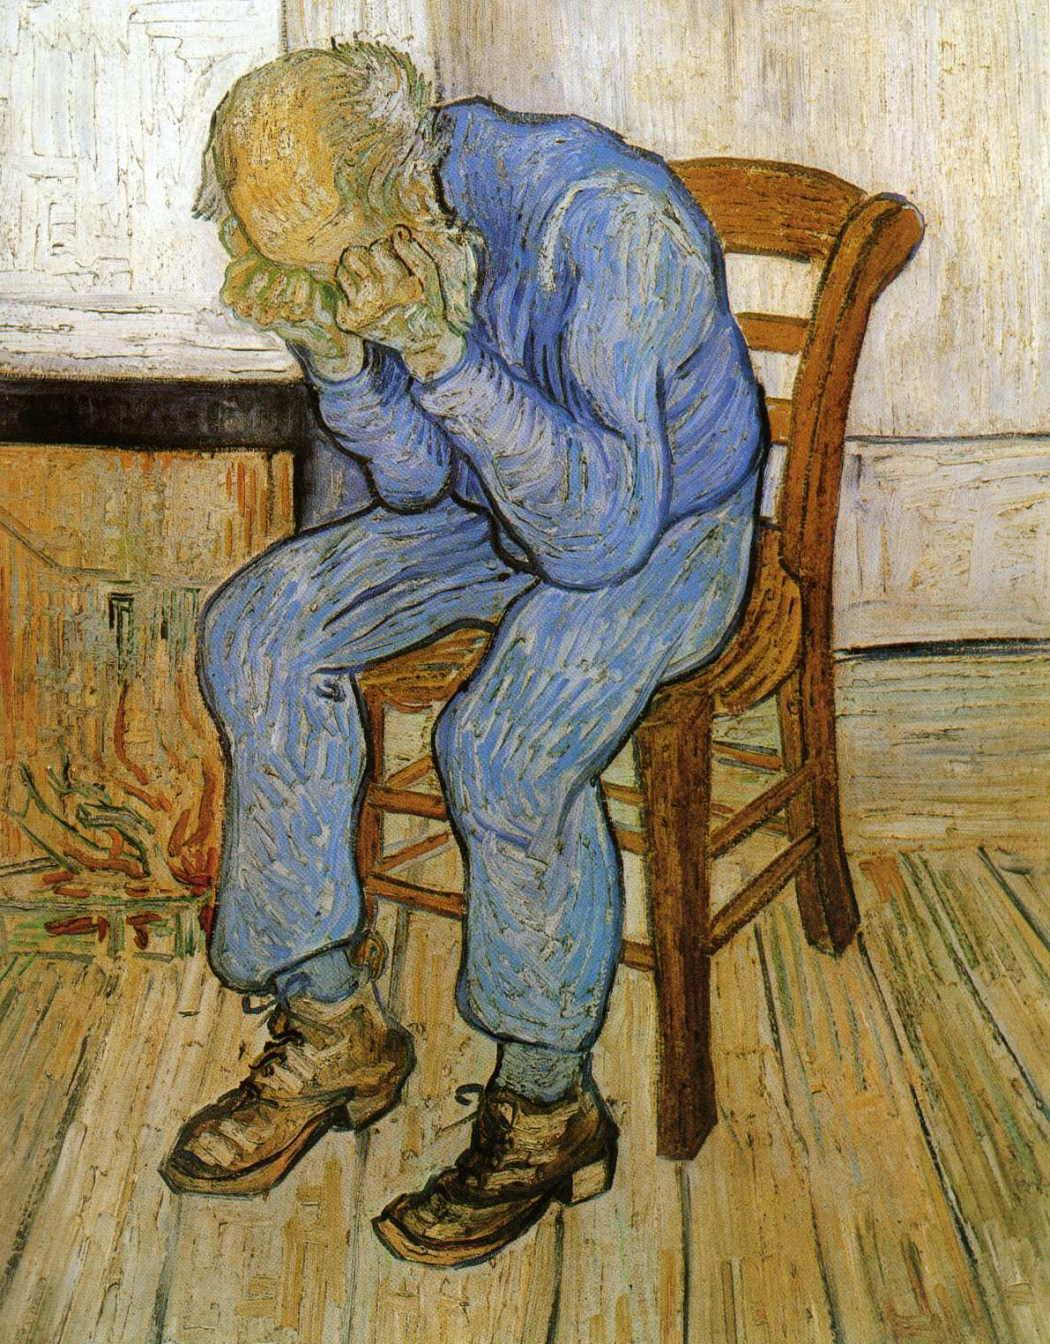 Old Man in Sorrow (On the Threshold of Eternity)